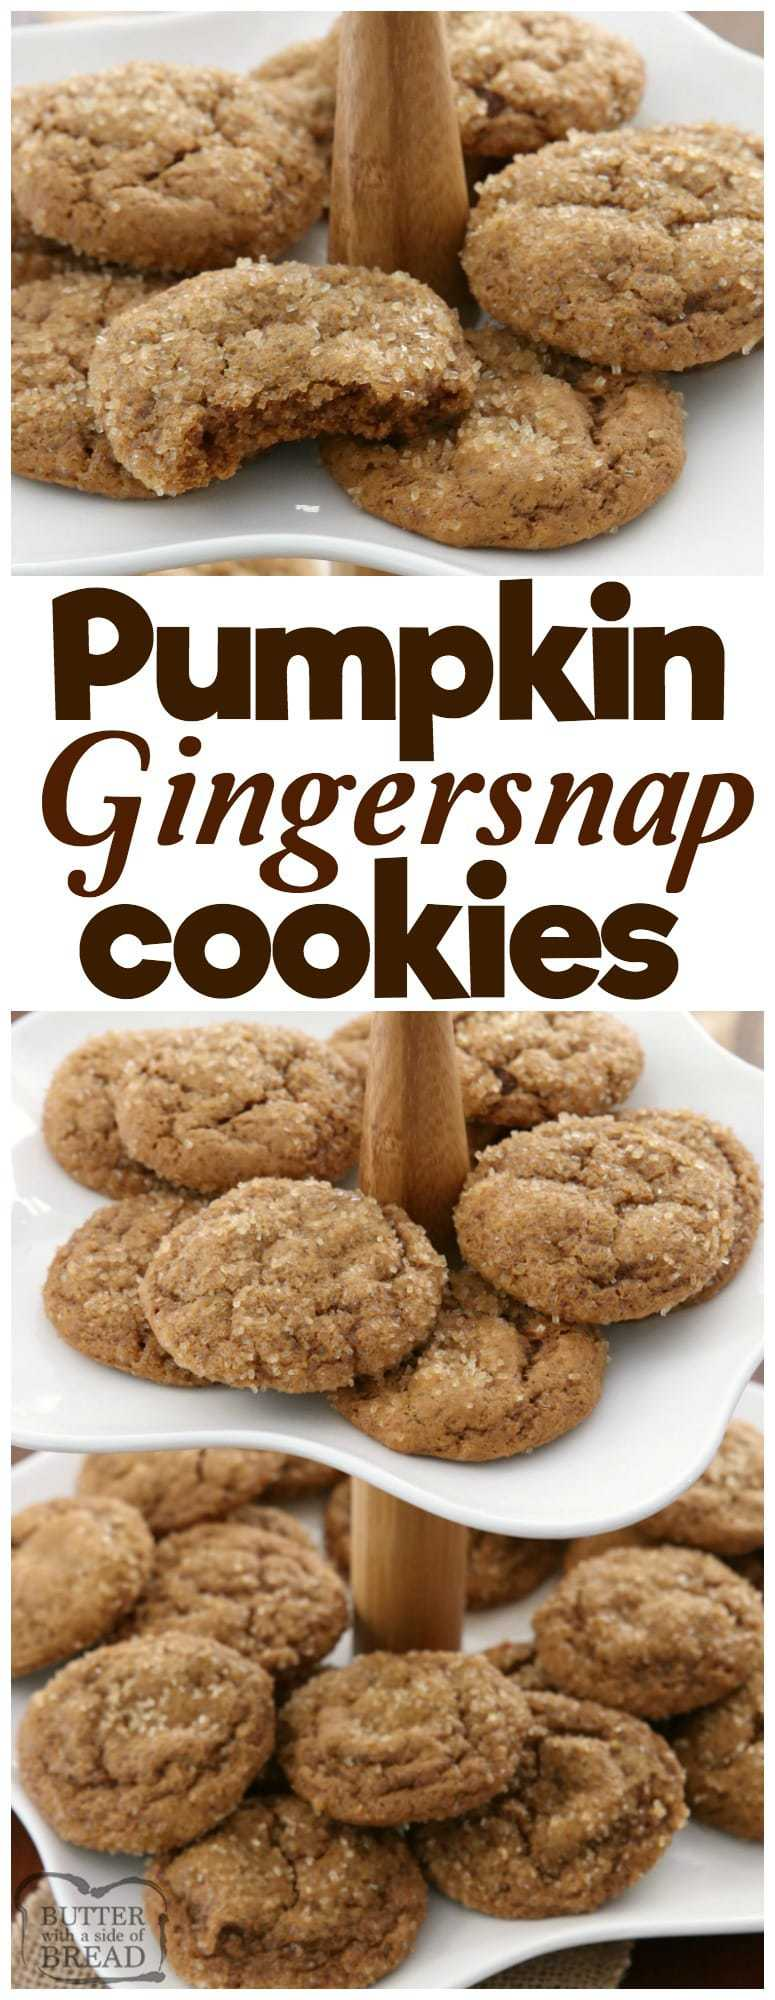 Pumpkin Gingersnap Cookies are soft, perfectly spiced gingersnap cookies made with pumpkin! Classic cookie recipe with a twist perfect for holiday baking. Perfect #gingersnap #cookie #recipe for the #holidays from Butter With A Side of Bread #baking #